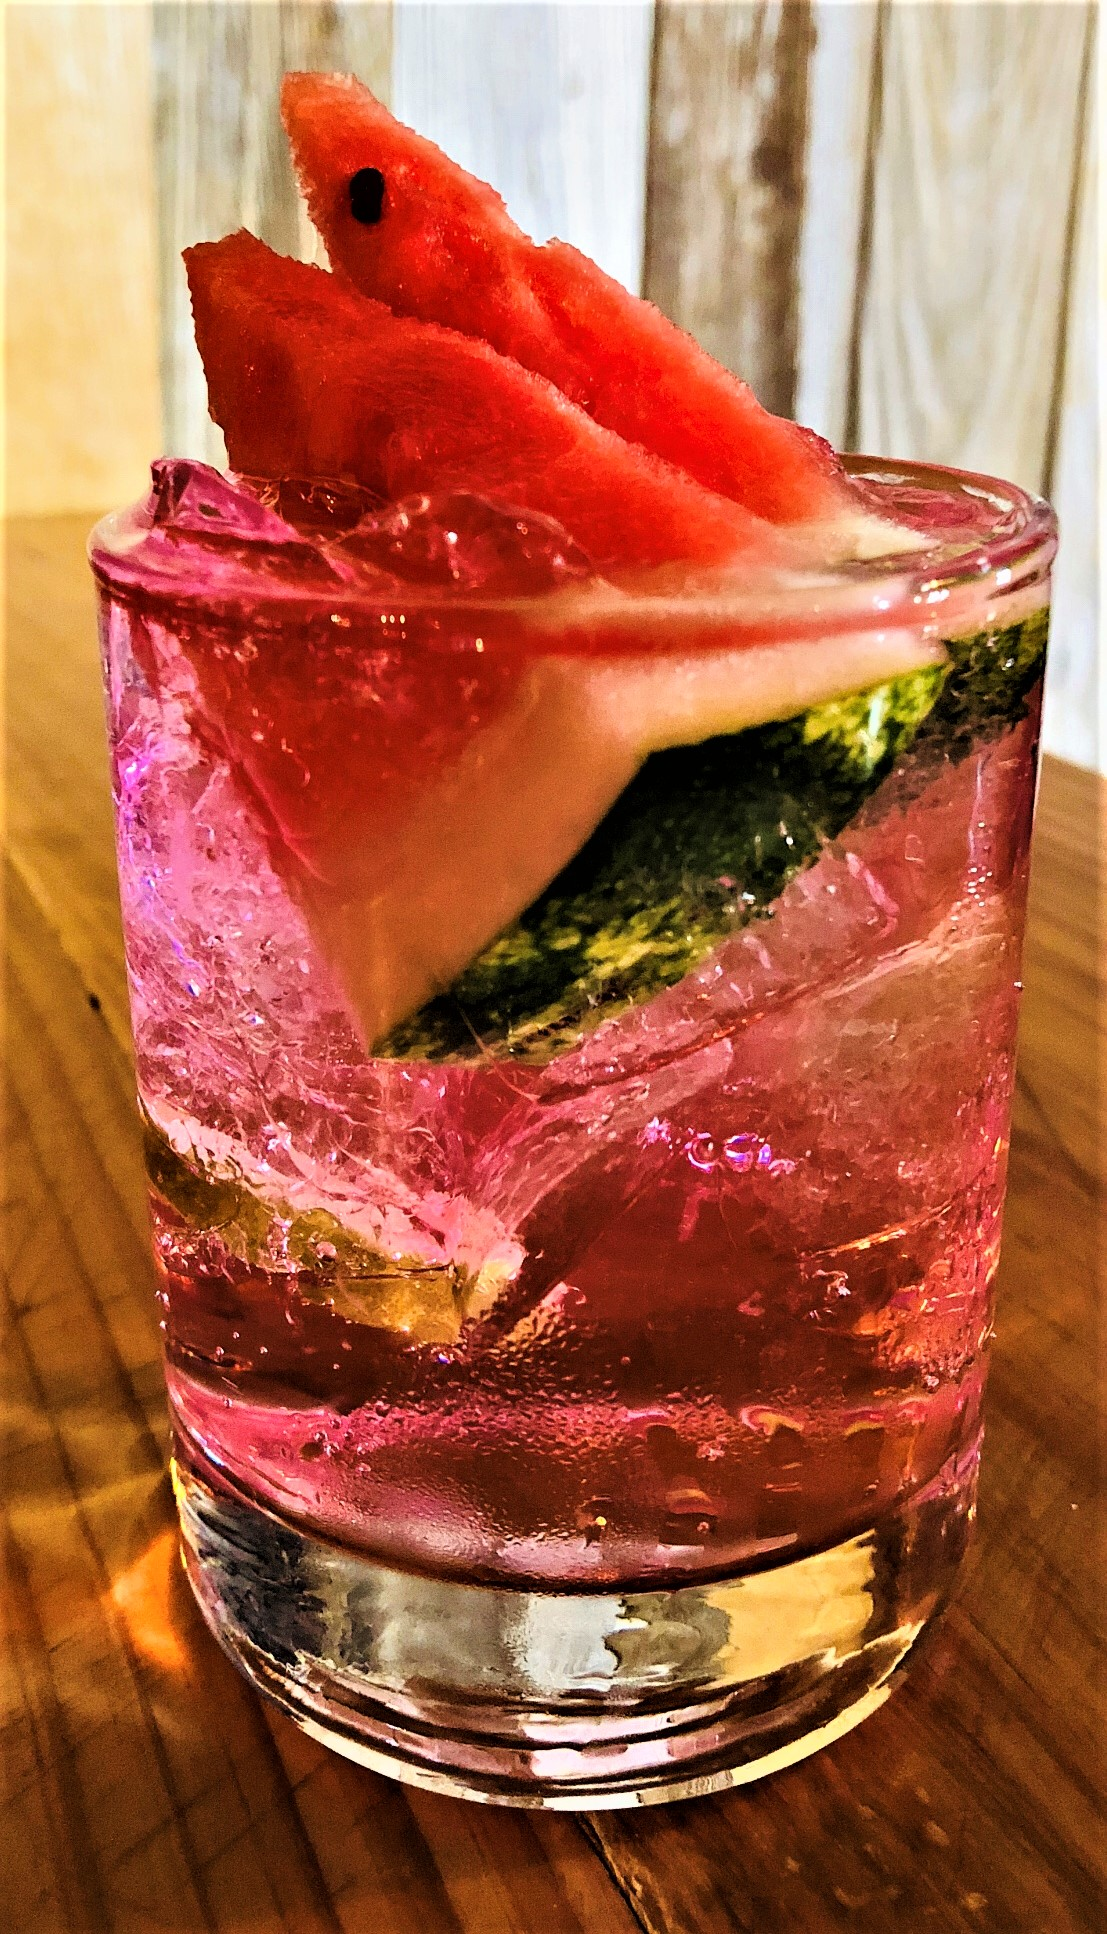 SANDIA SPRITZER  2 ounces of Wild Rag Vodka -Watermelon infused  2.5 ounces of Sprite 1/2 ounce of lime. 1 small watermelon wedge  (Pre-prep: soak watermelon wedge in Wild Rag Vodka - watermelon infused - for 20 minutes)  Pour ingredients in a glass filled with ice. Garnish with watermelon wedge